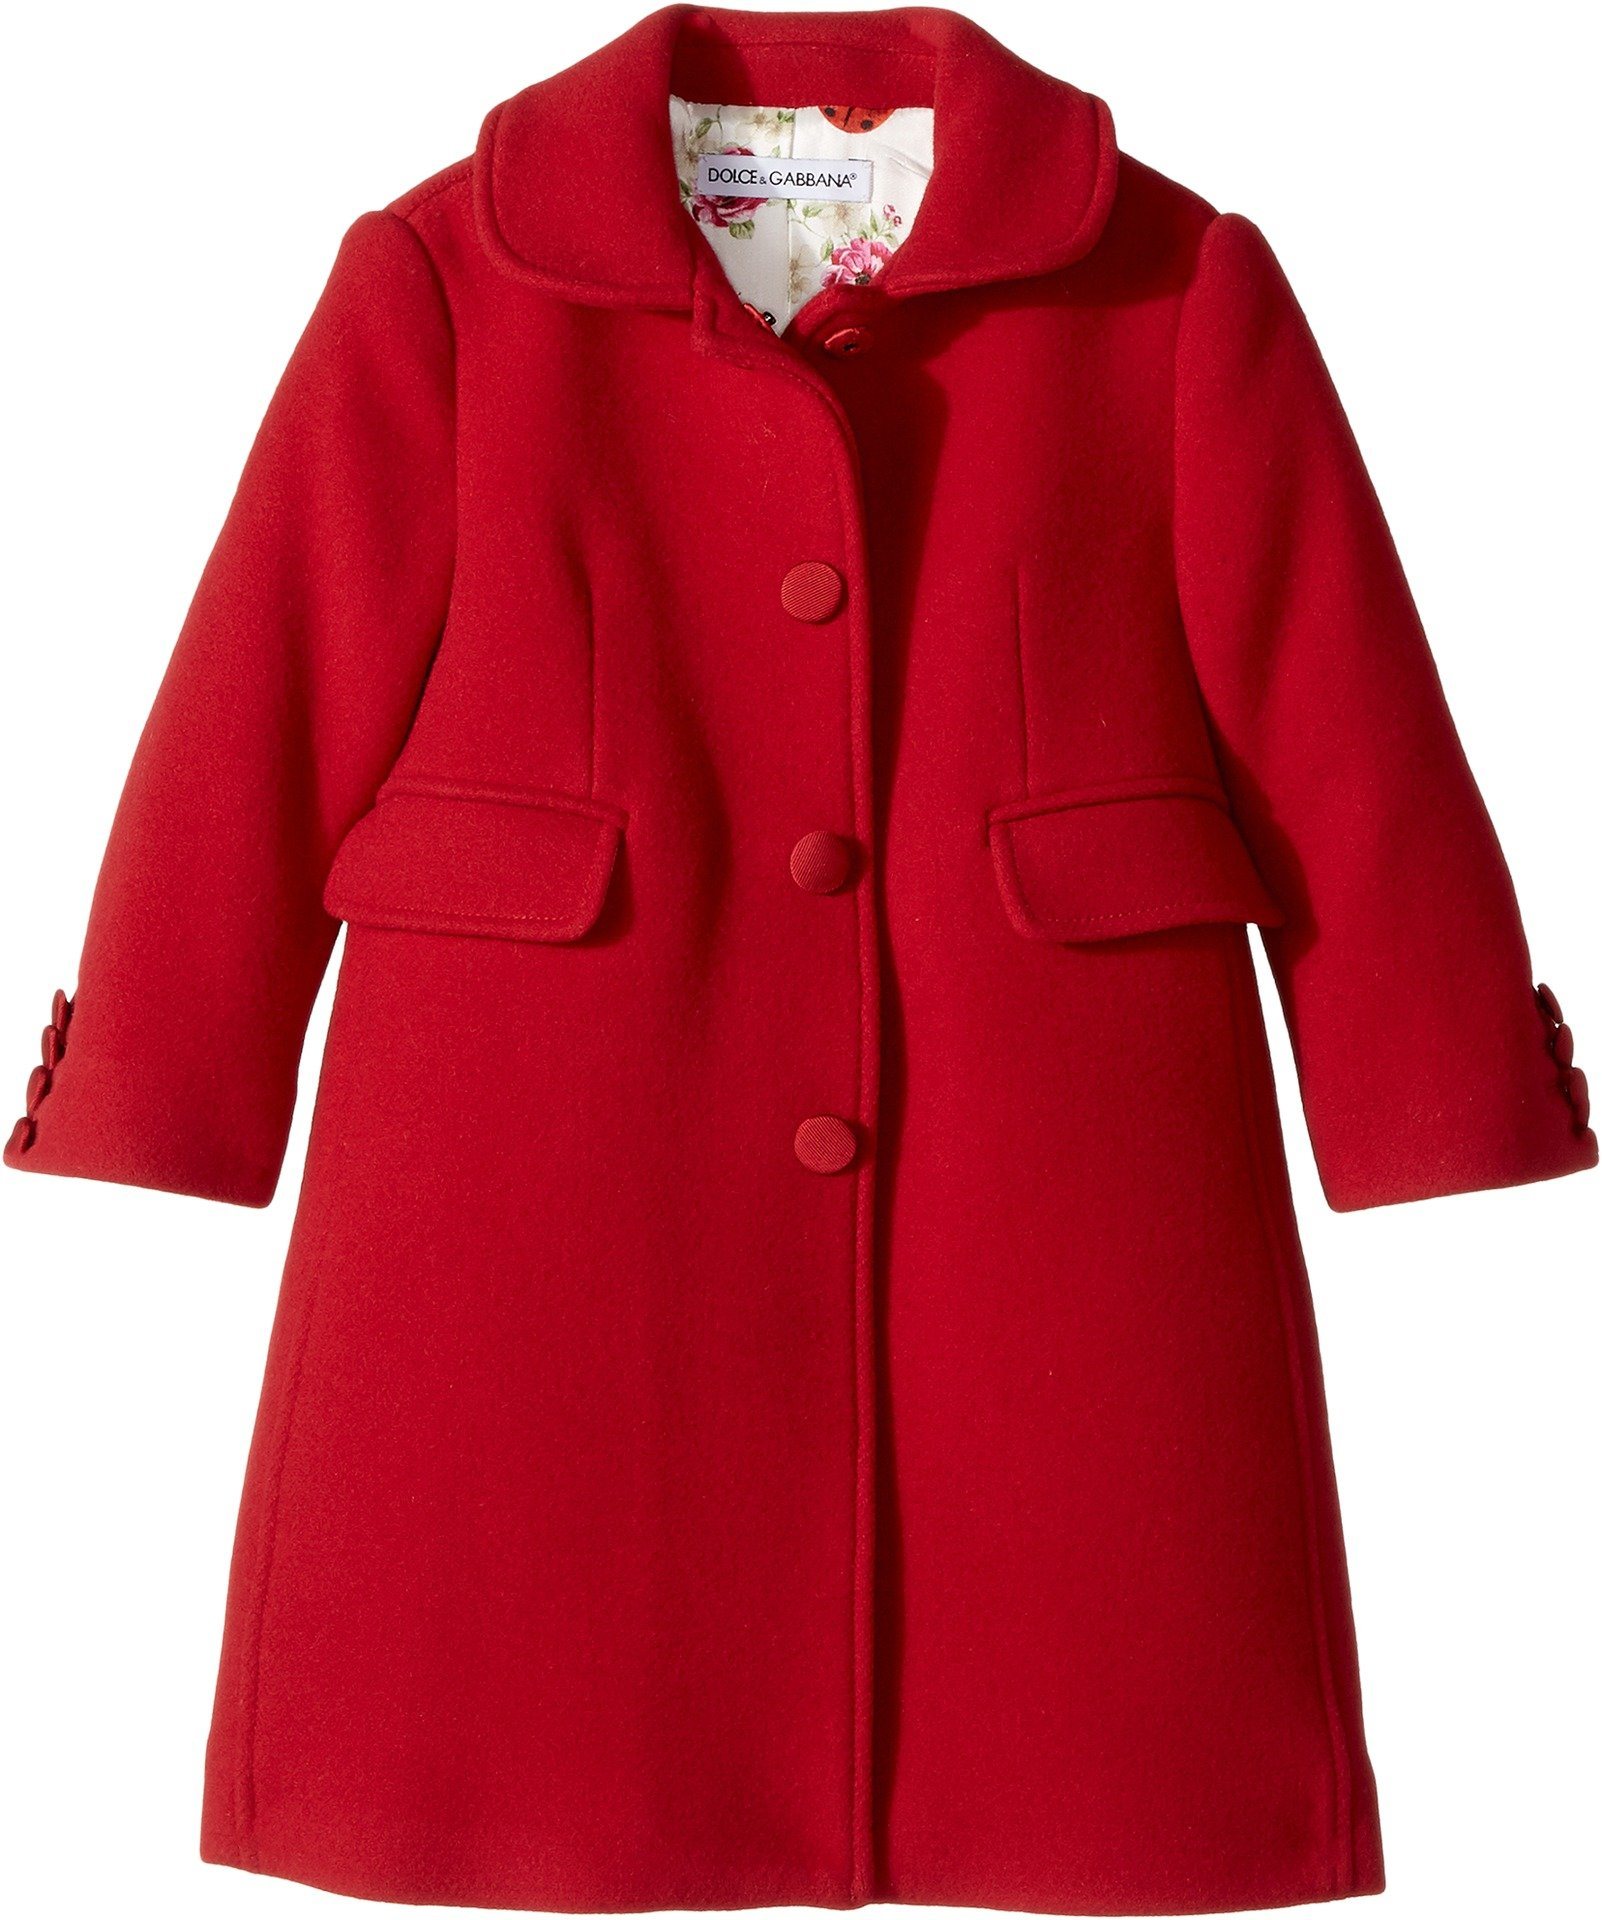 Dolce & Gabbana Kids Baby Girl's Back to School Wool/Cashmere Coat (Toddler/Little Kids) Bordeaux 4T